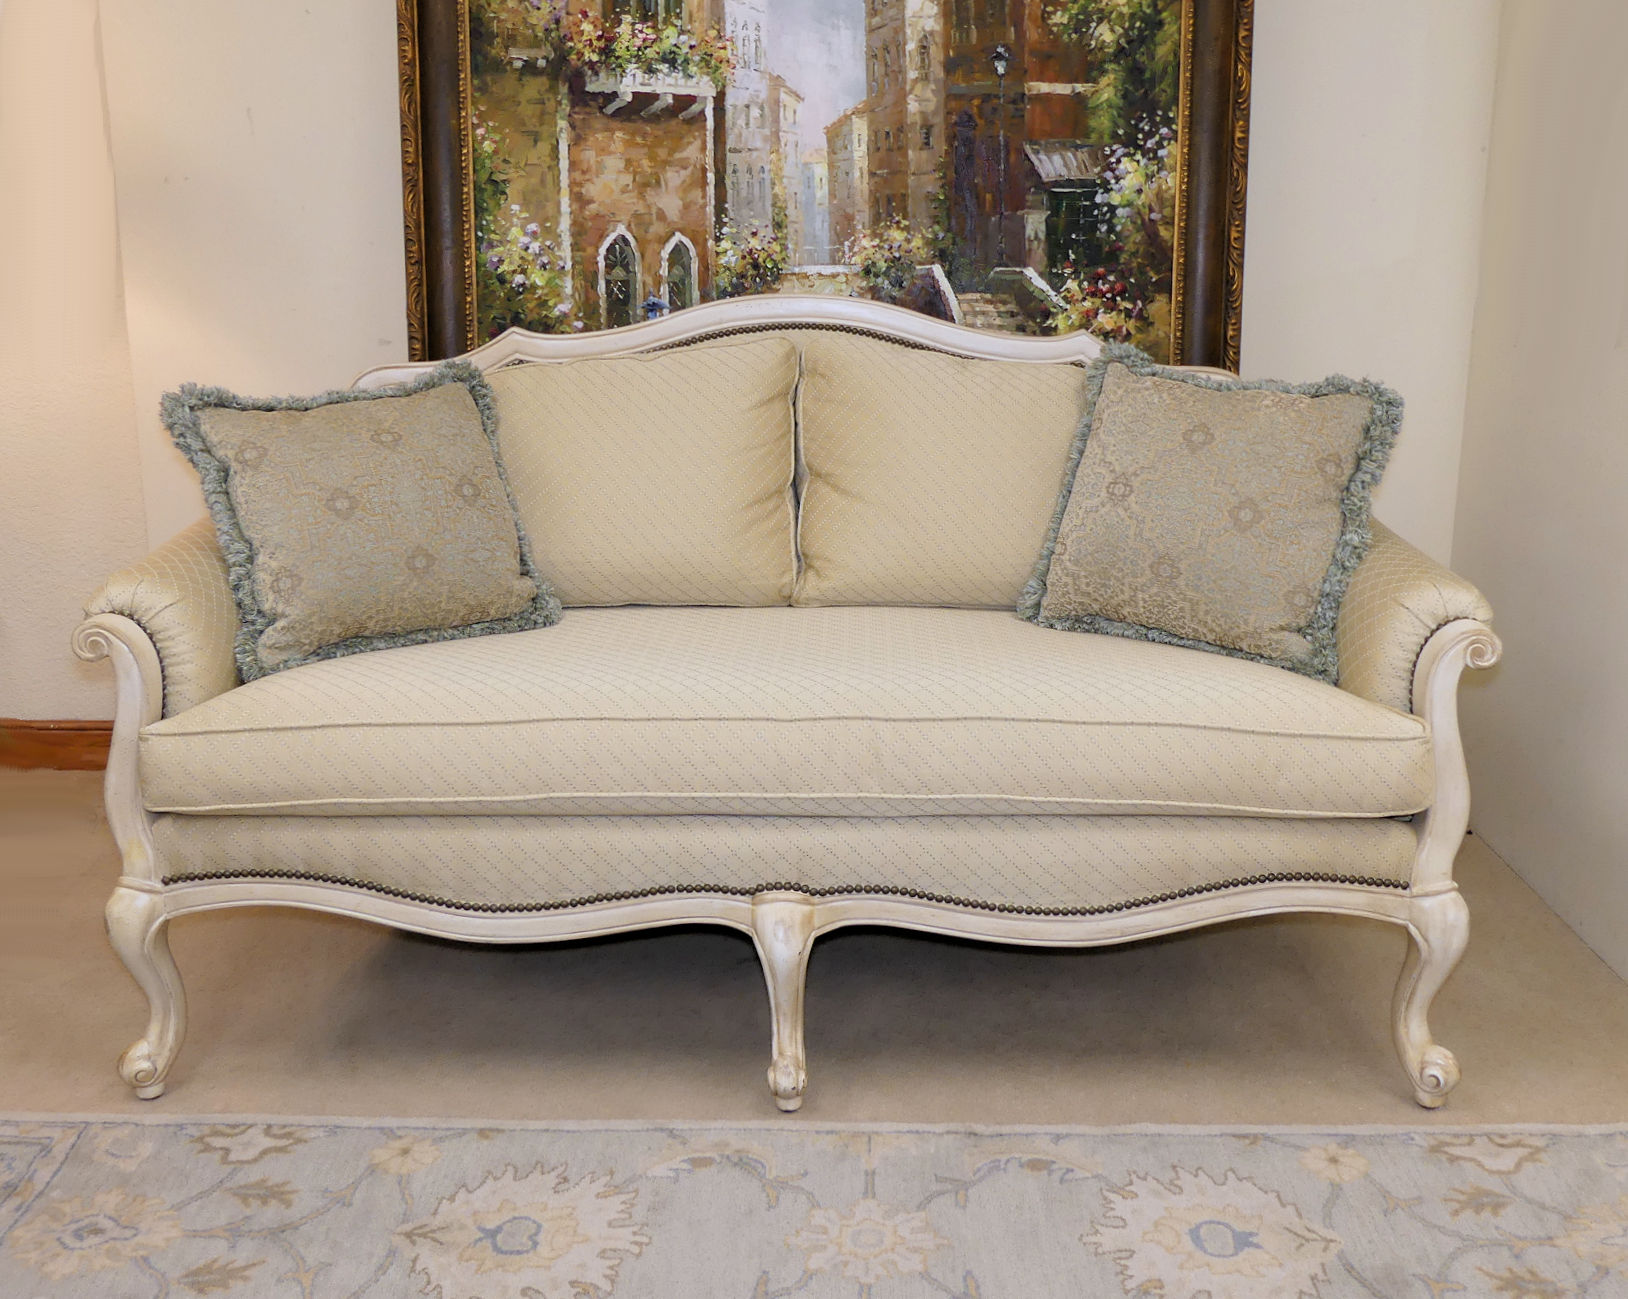 SOLD Thomasville Exposed Wood French Transitional Sofa